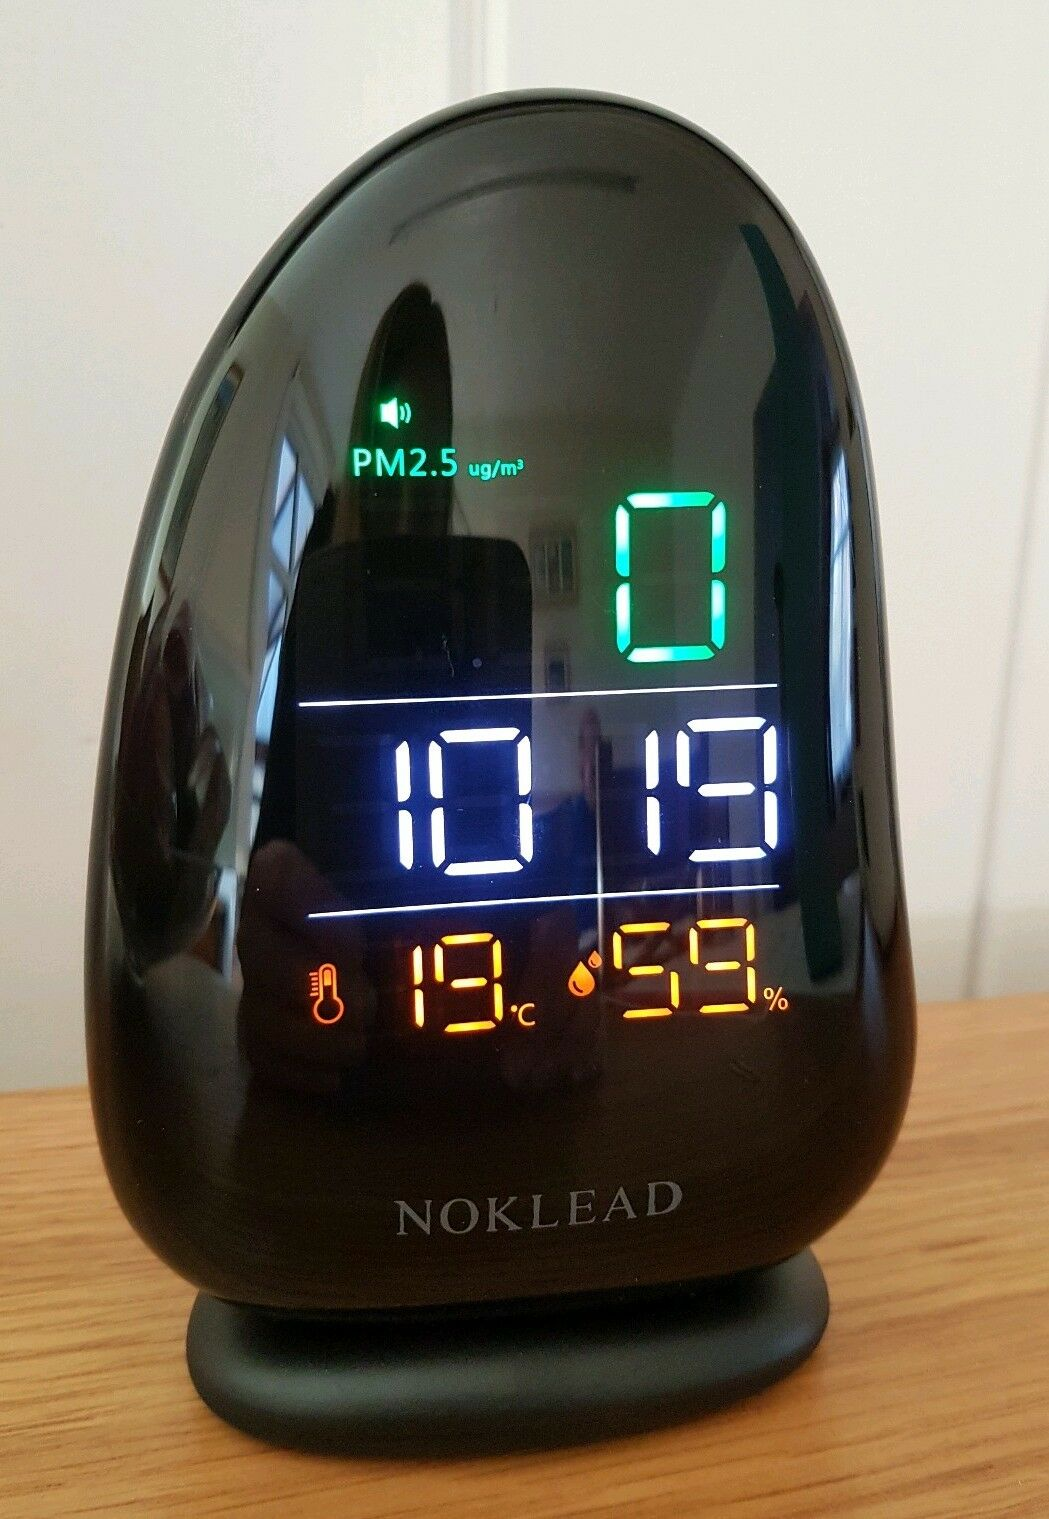 NOKLEAD Air Quality Monitor PM2.5 Temperature Rh Humidity Meter with Time for Ho